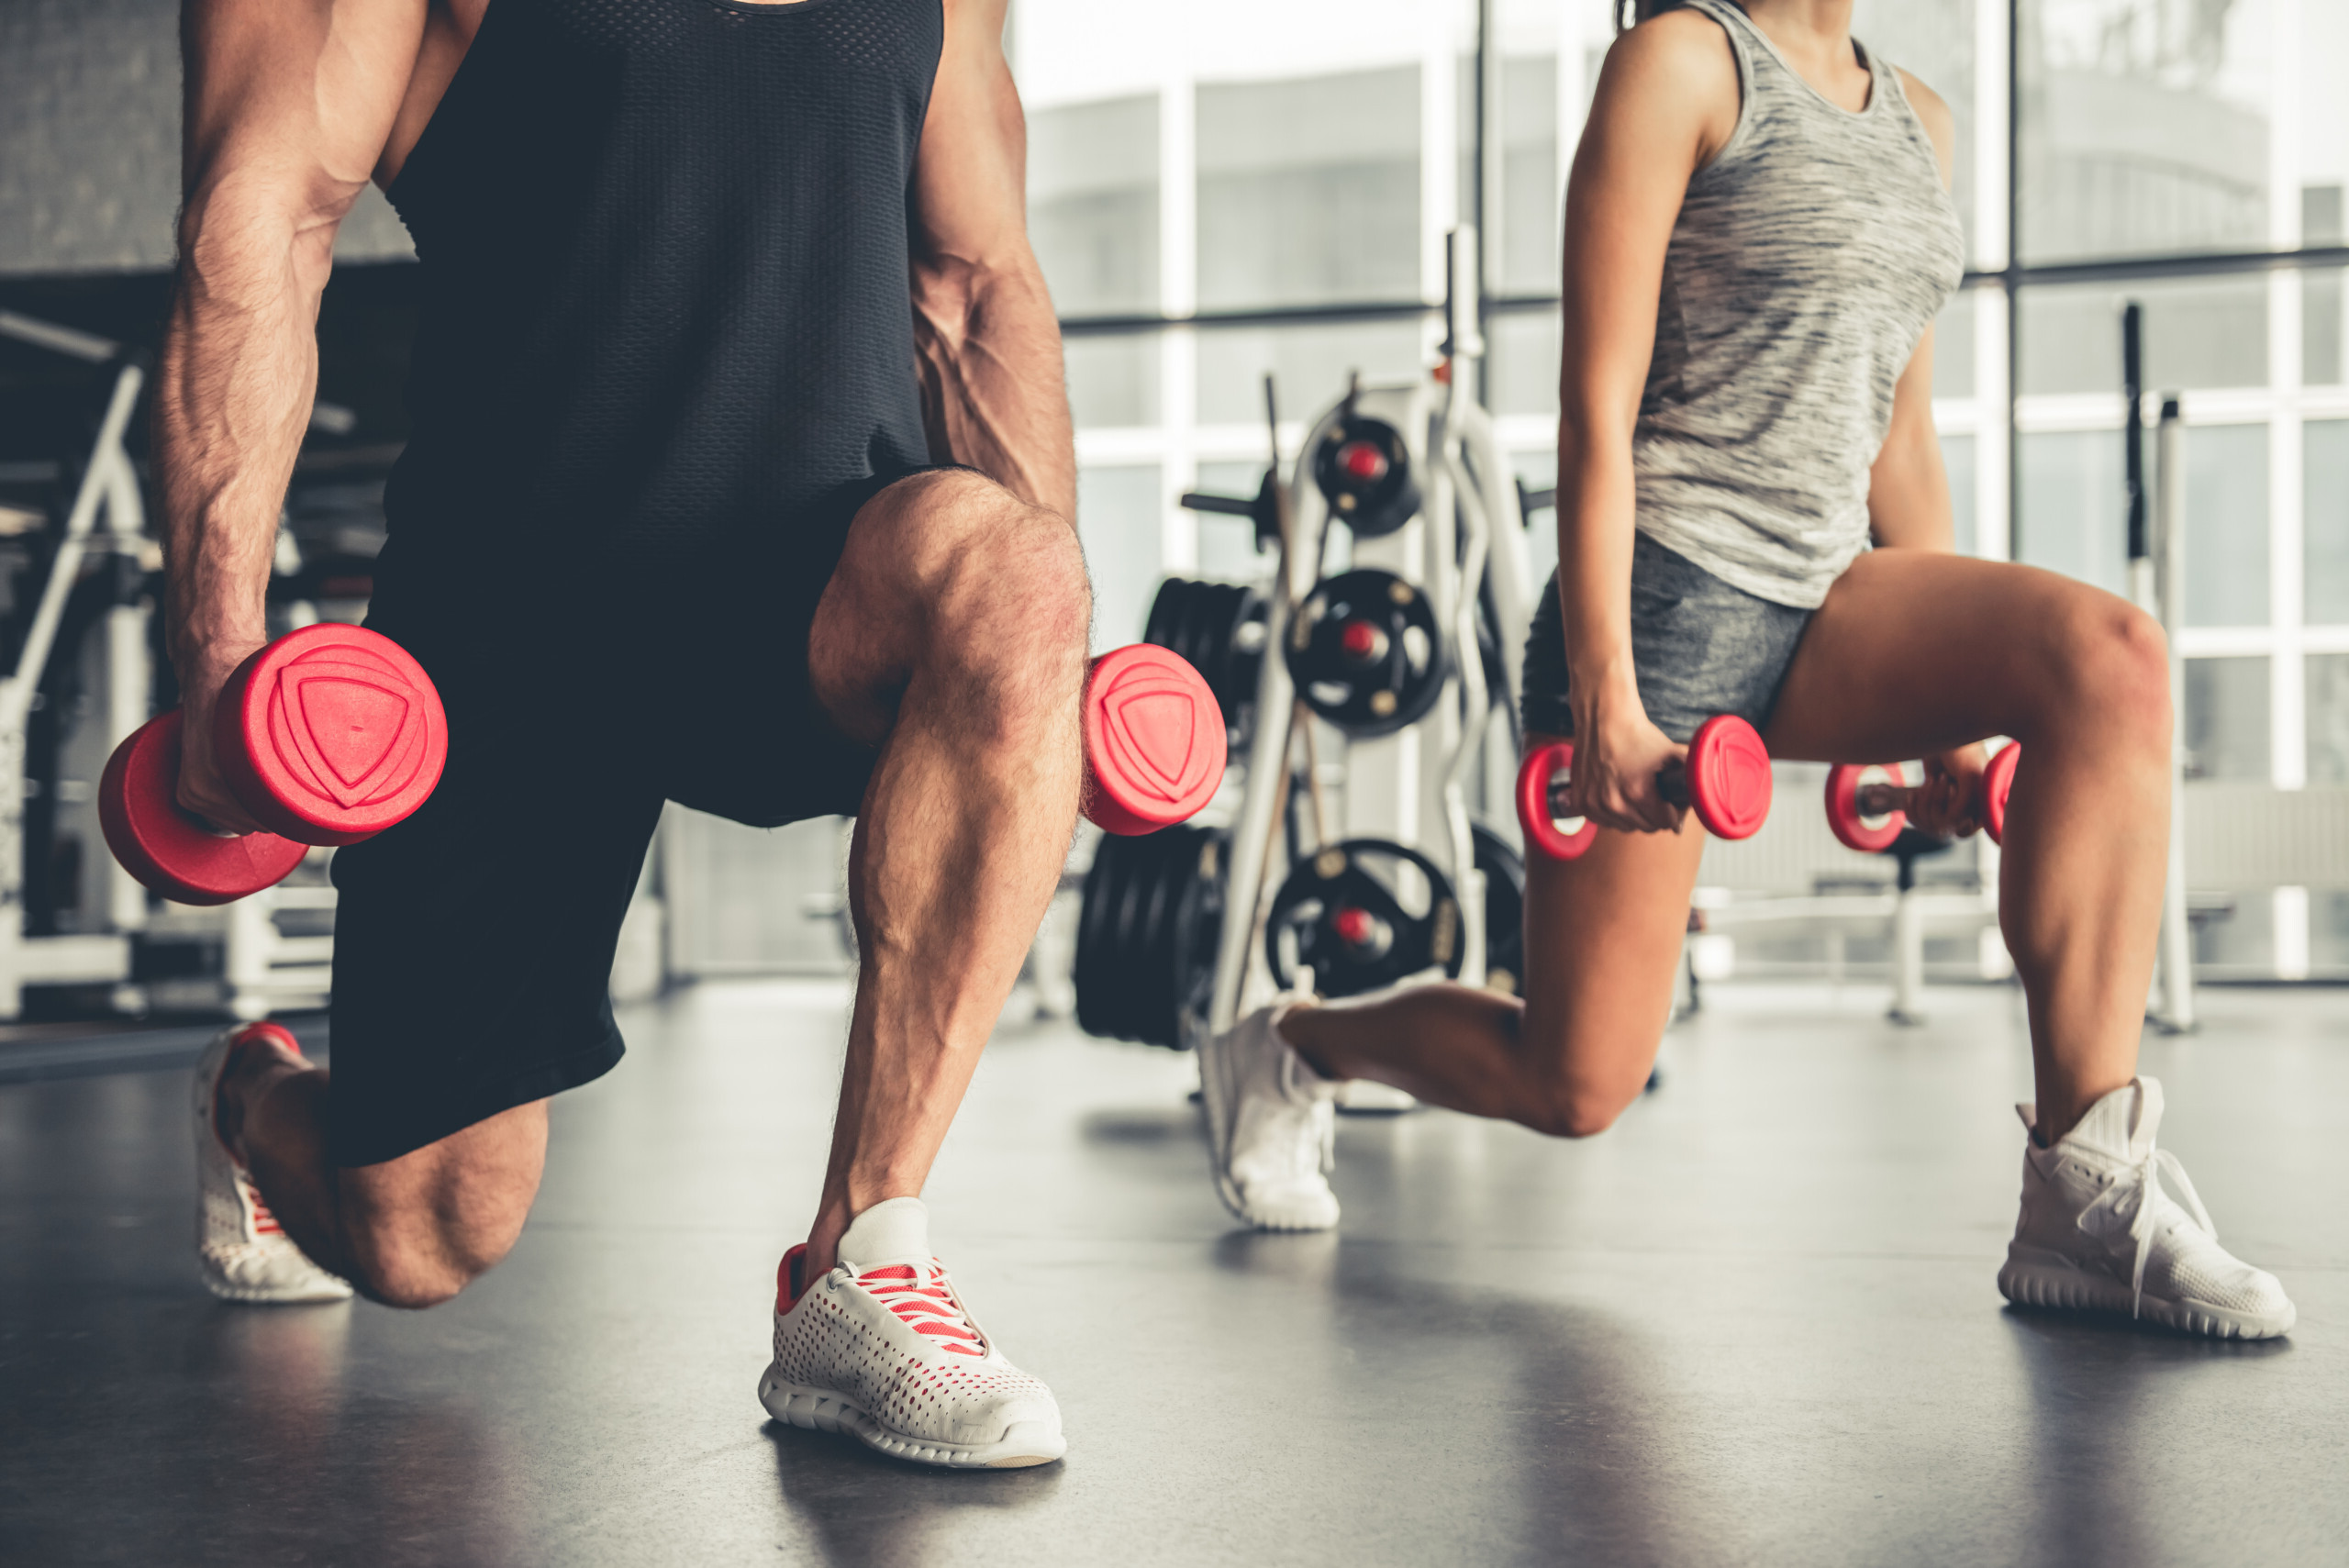 Twitching Muscles: Exercise that Can Cause Muscle Twitching